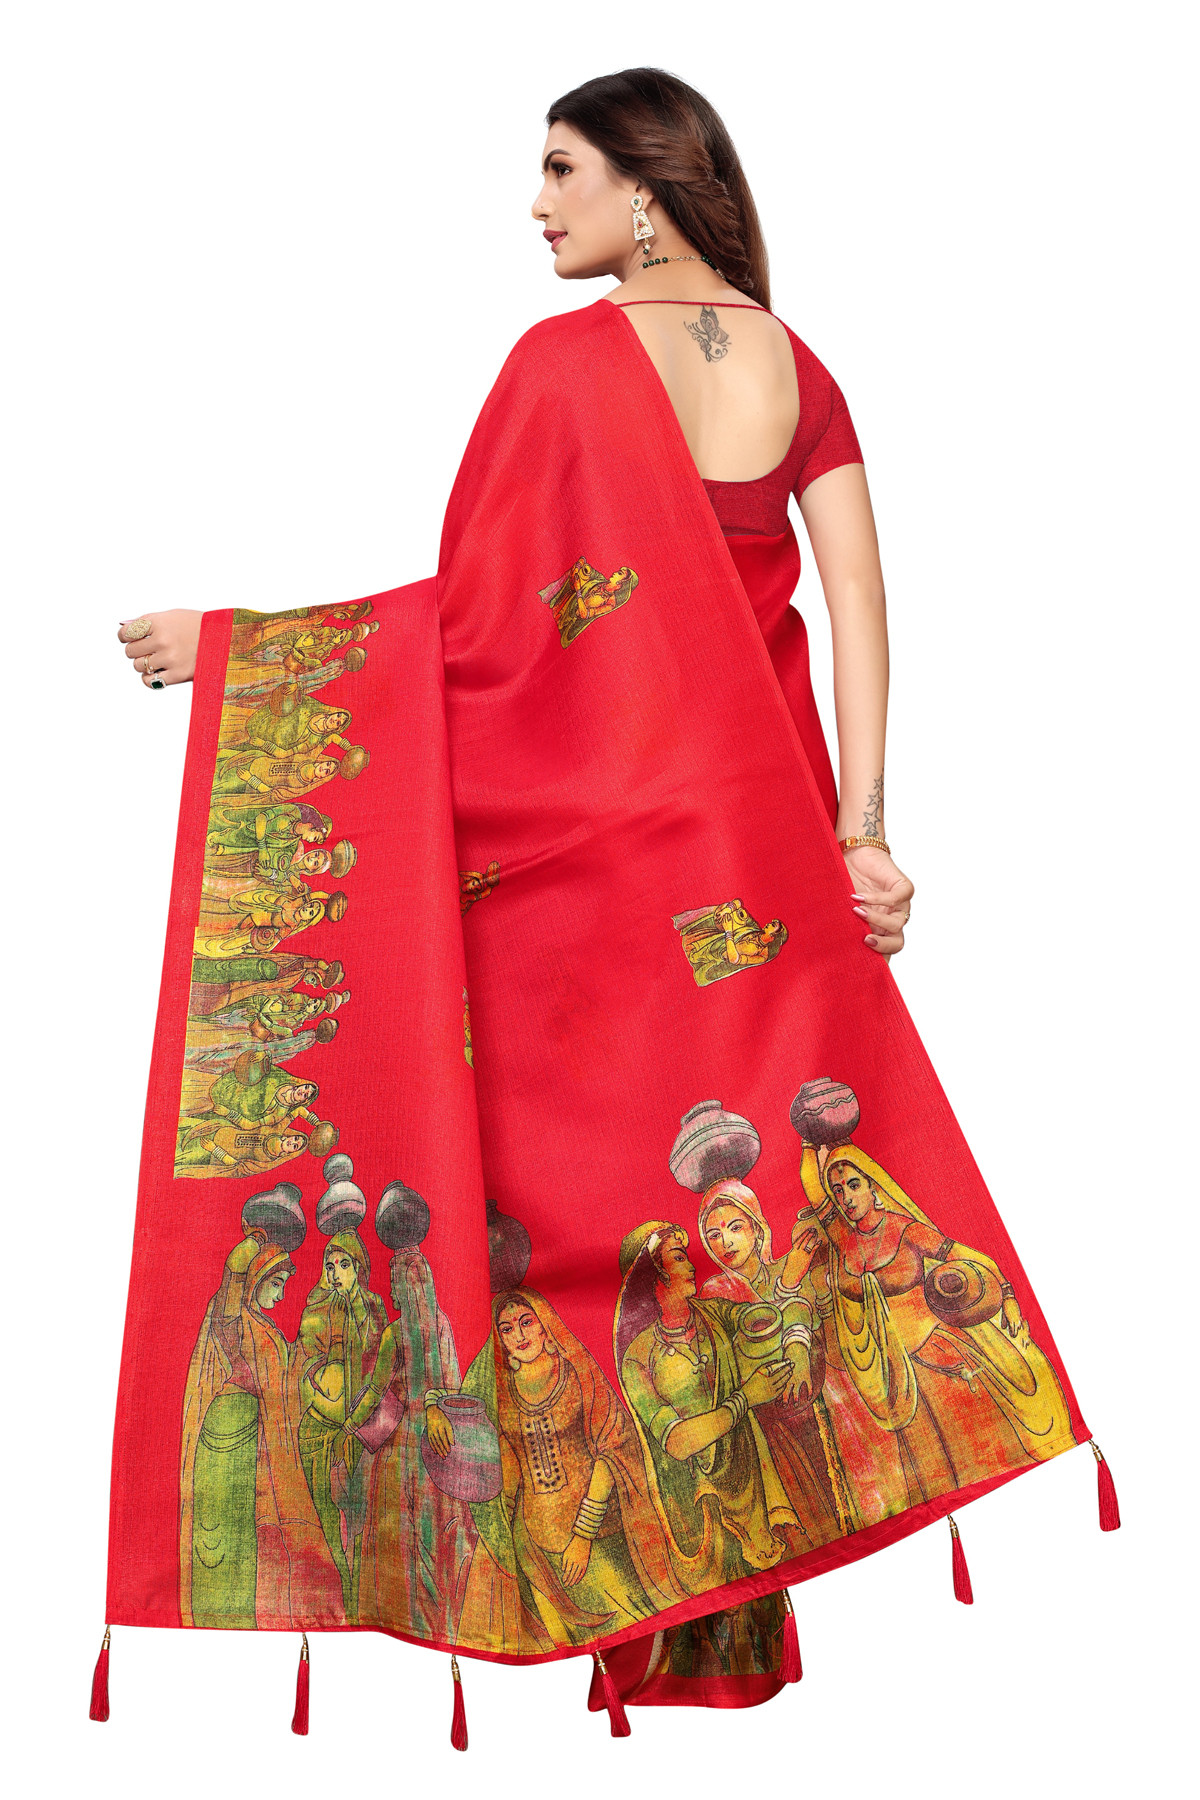 Cultural Party wear Neon Red Color Khadi Silk Jhalor saree